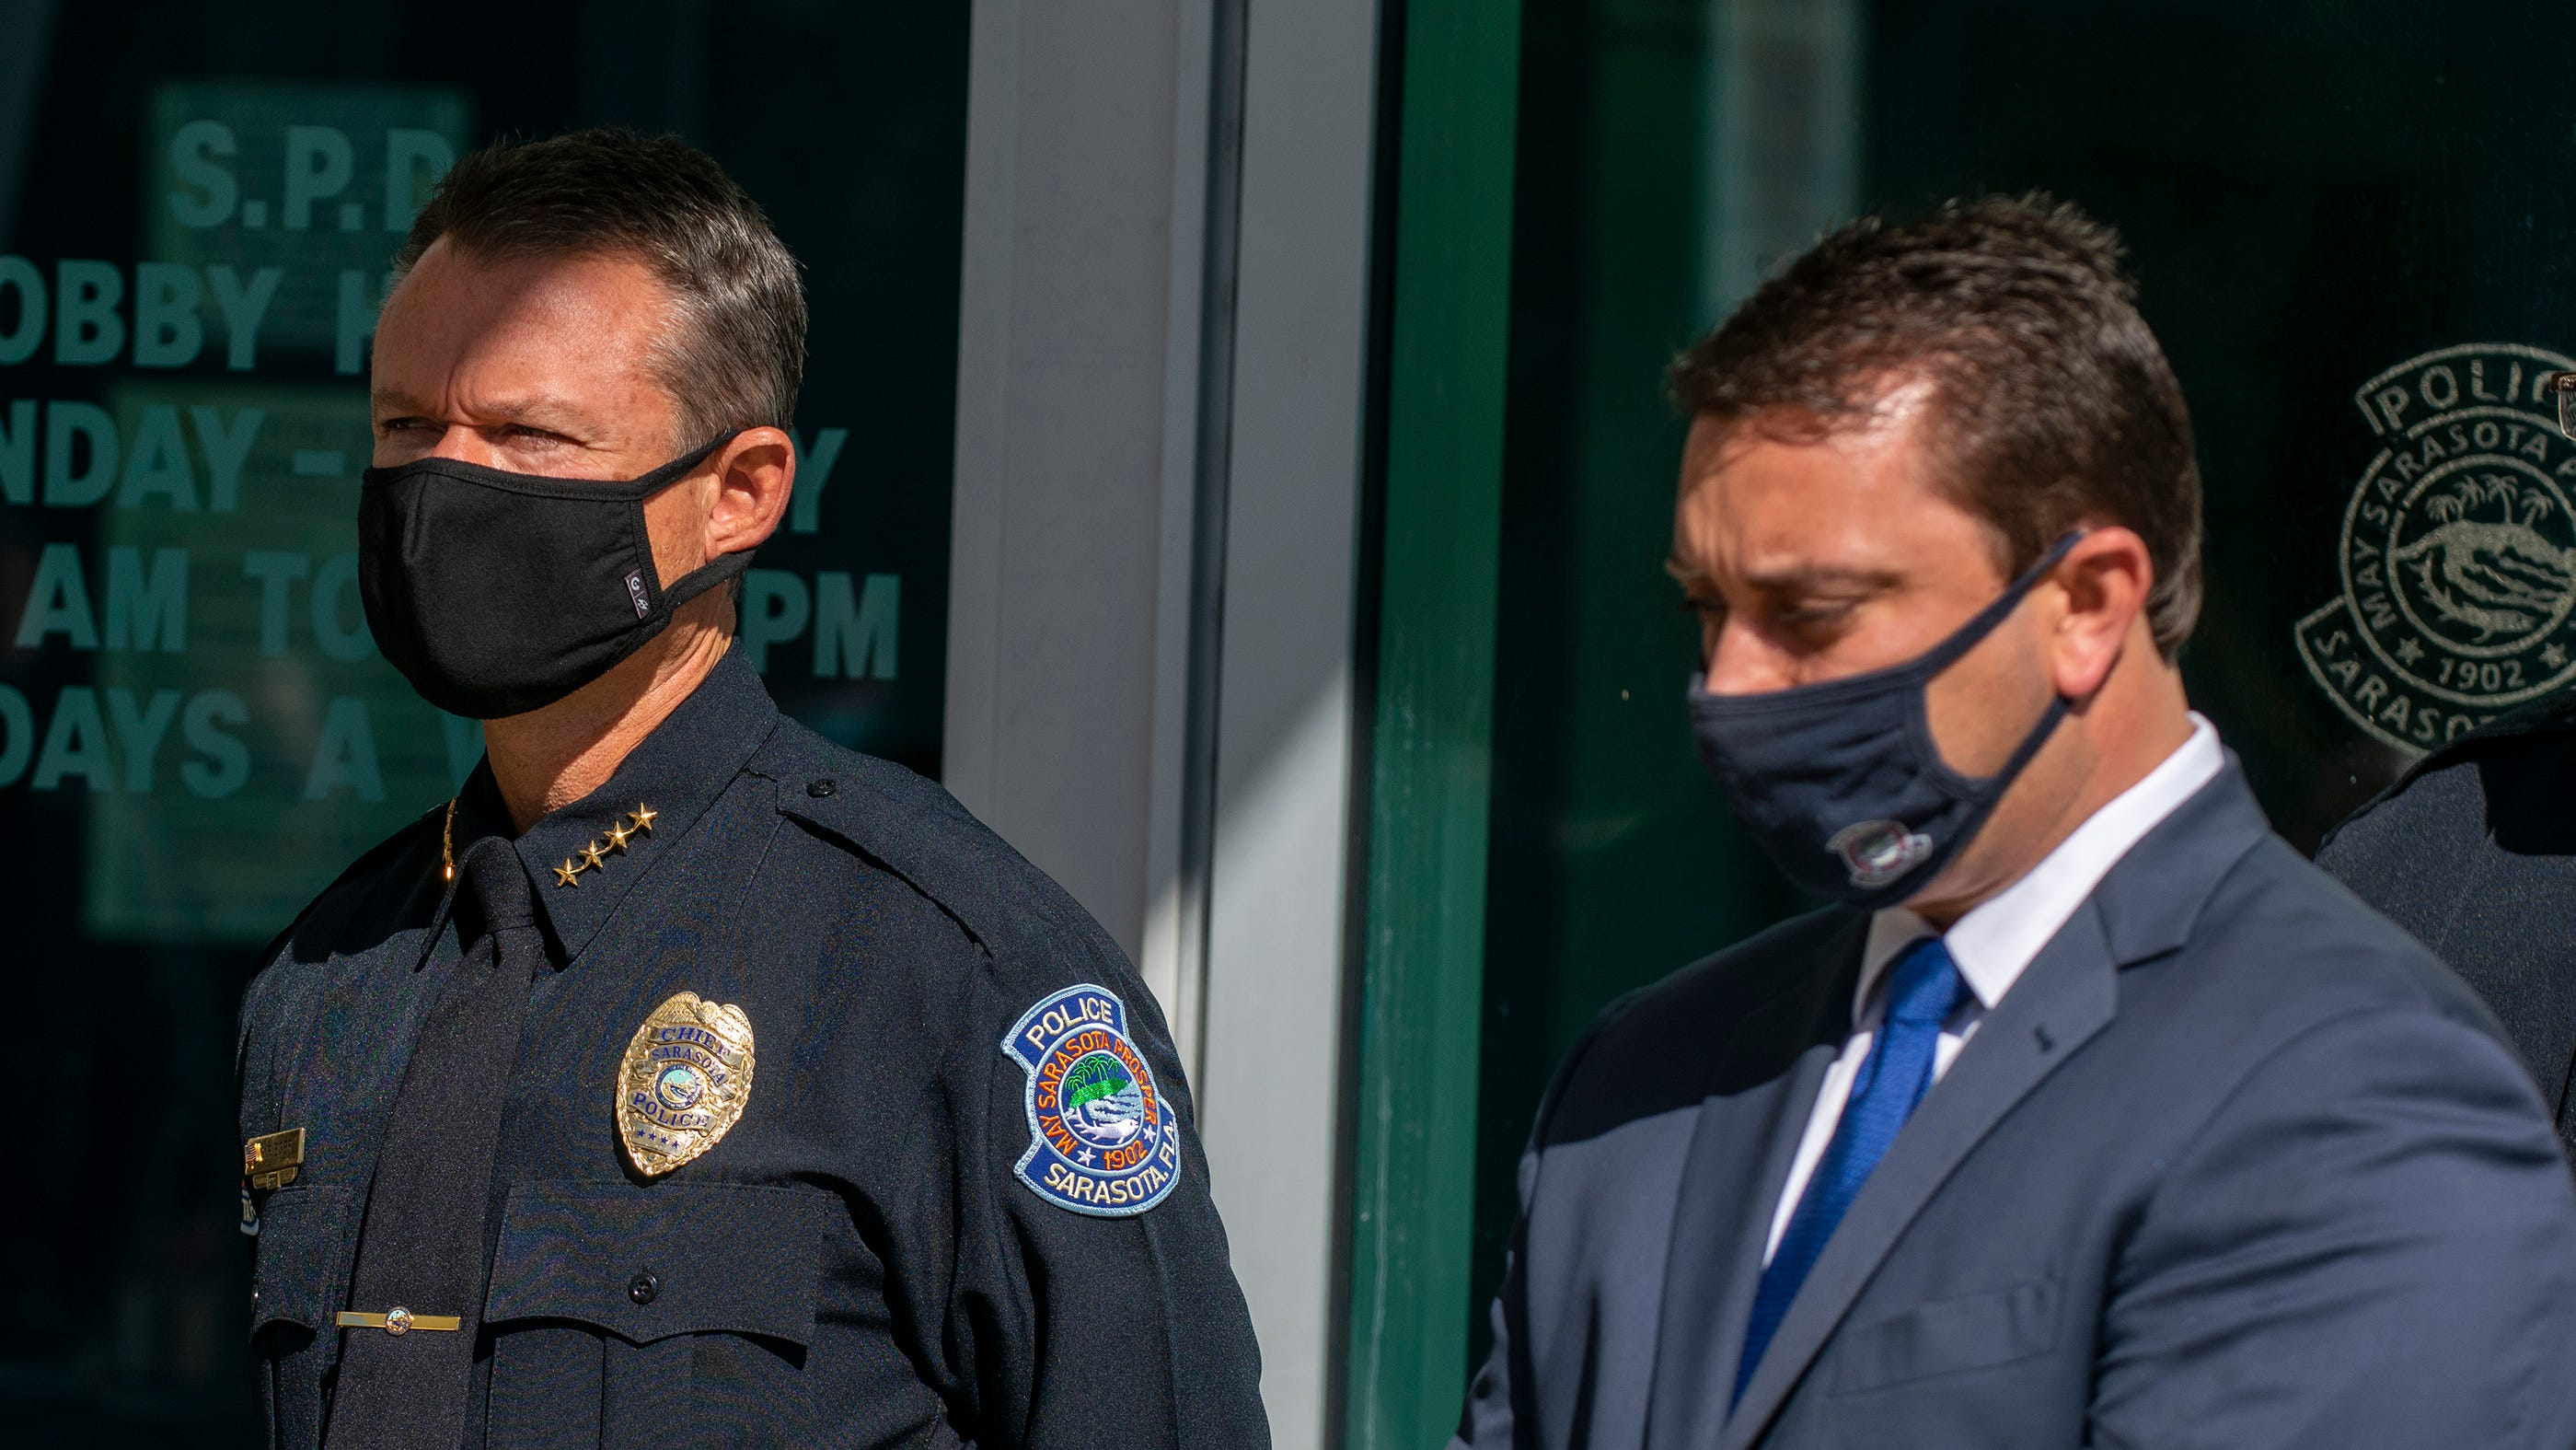 Sarasota Mayor Hagen Brody and Sarasota Police Chief James Rieser at a recent press conference.